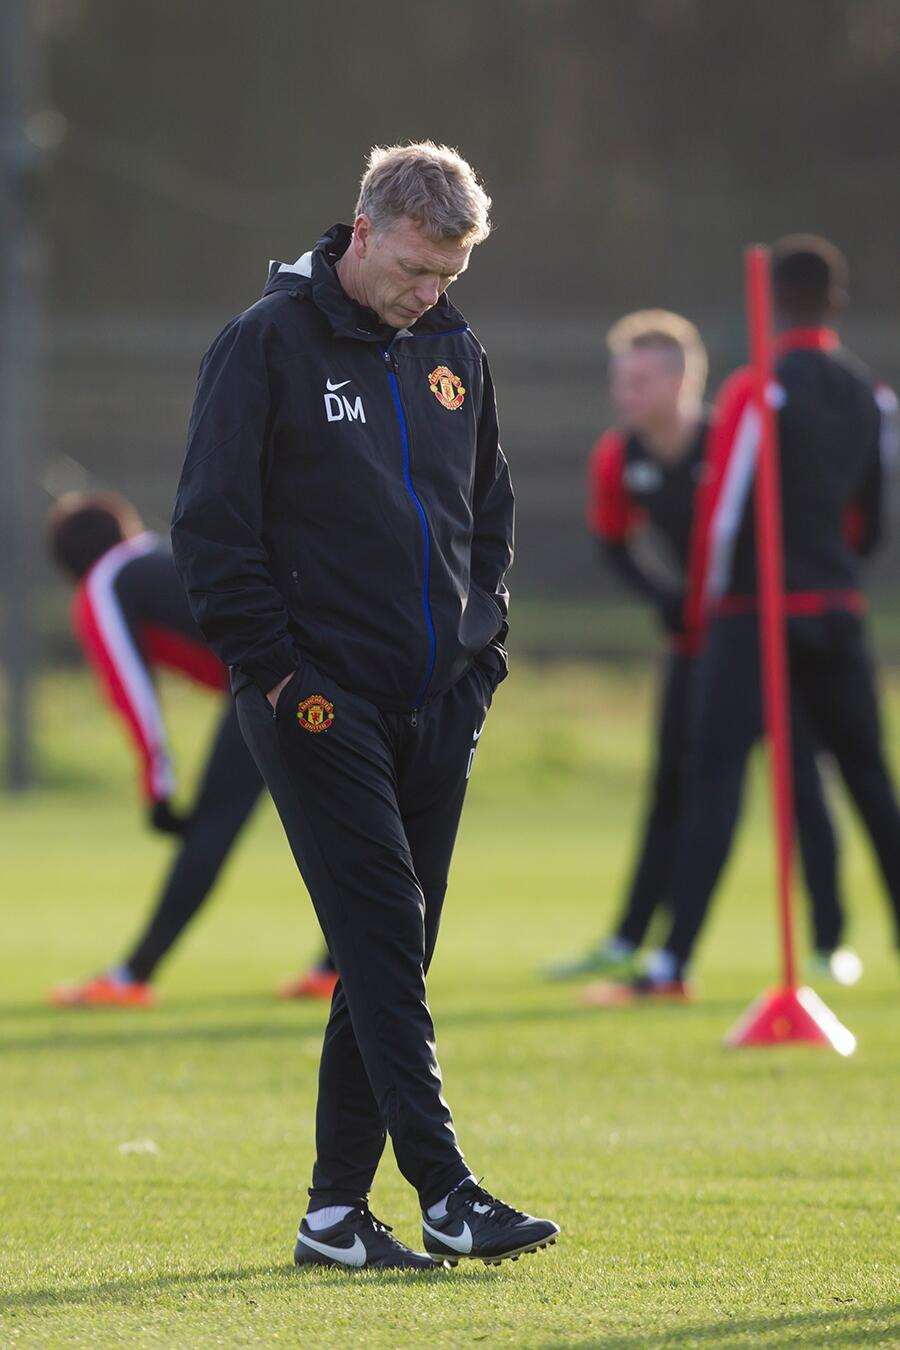 Cheer up David Moyes, it's not that bad... Oh. #MUFC http://t.co/L6SRZZfaWz